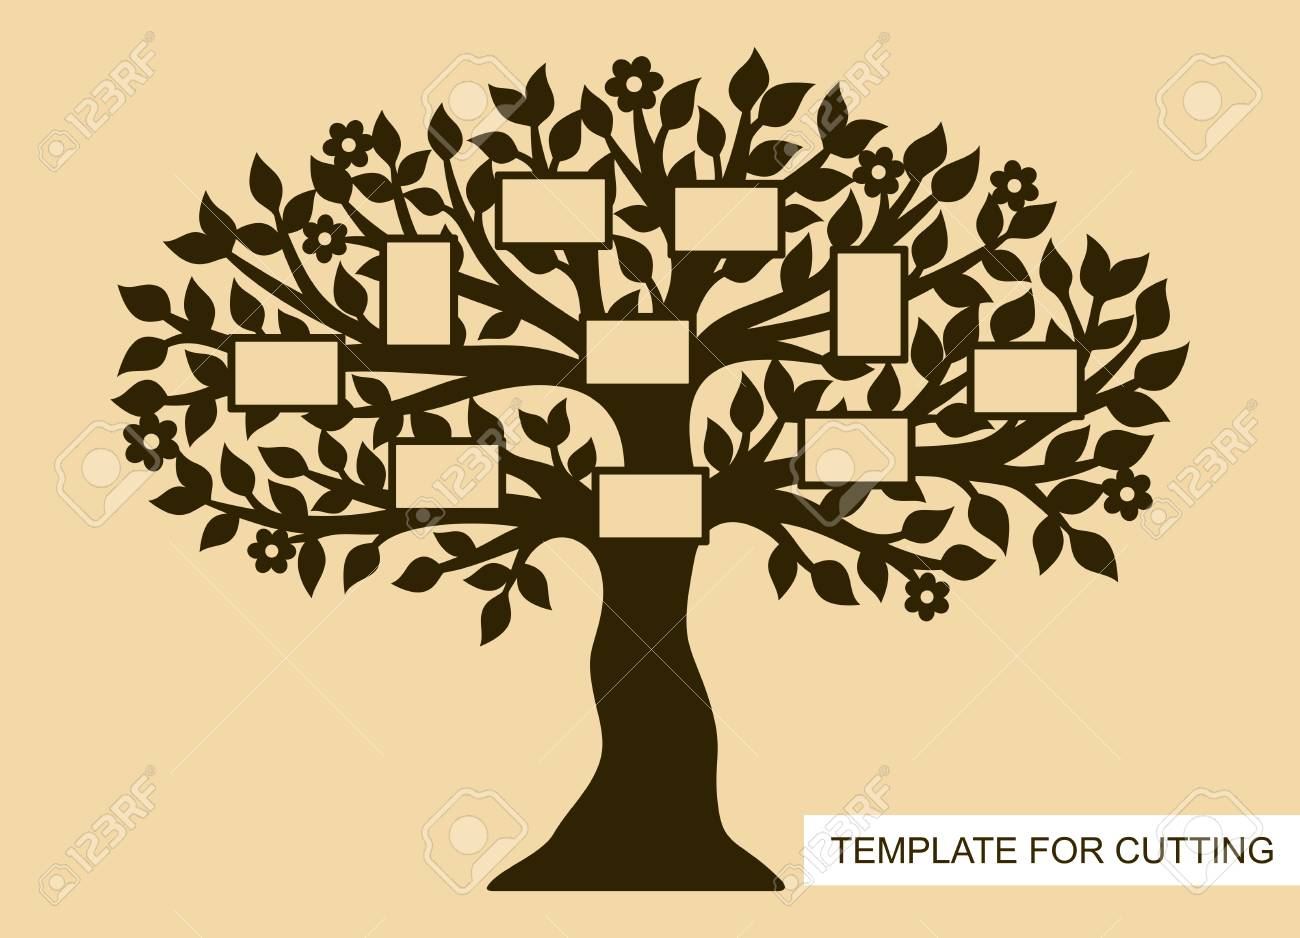 Family Tree With Photo Frames Template For Laser Cutting Wood